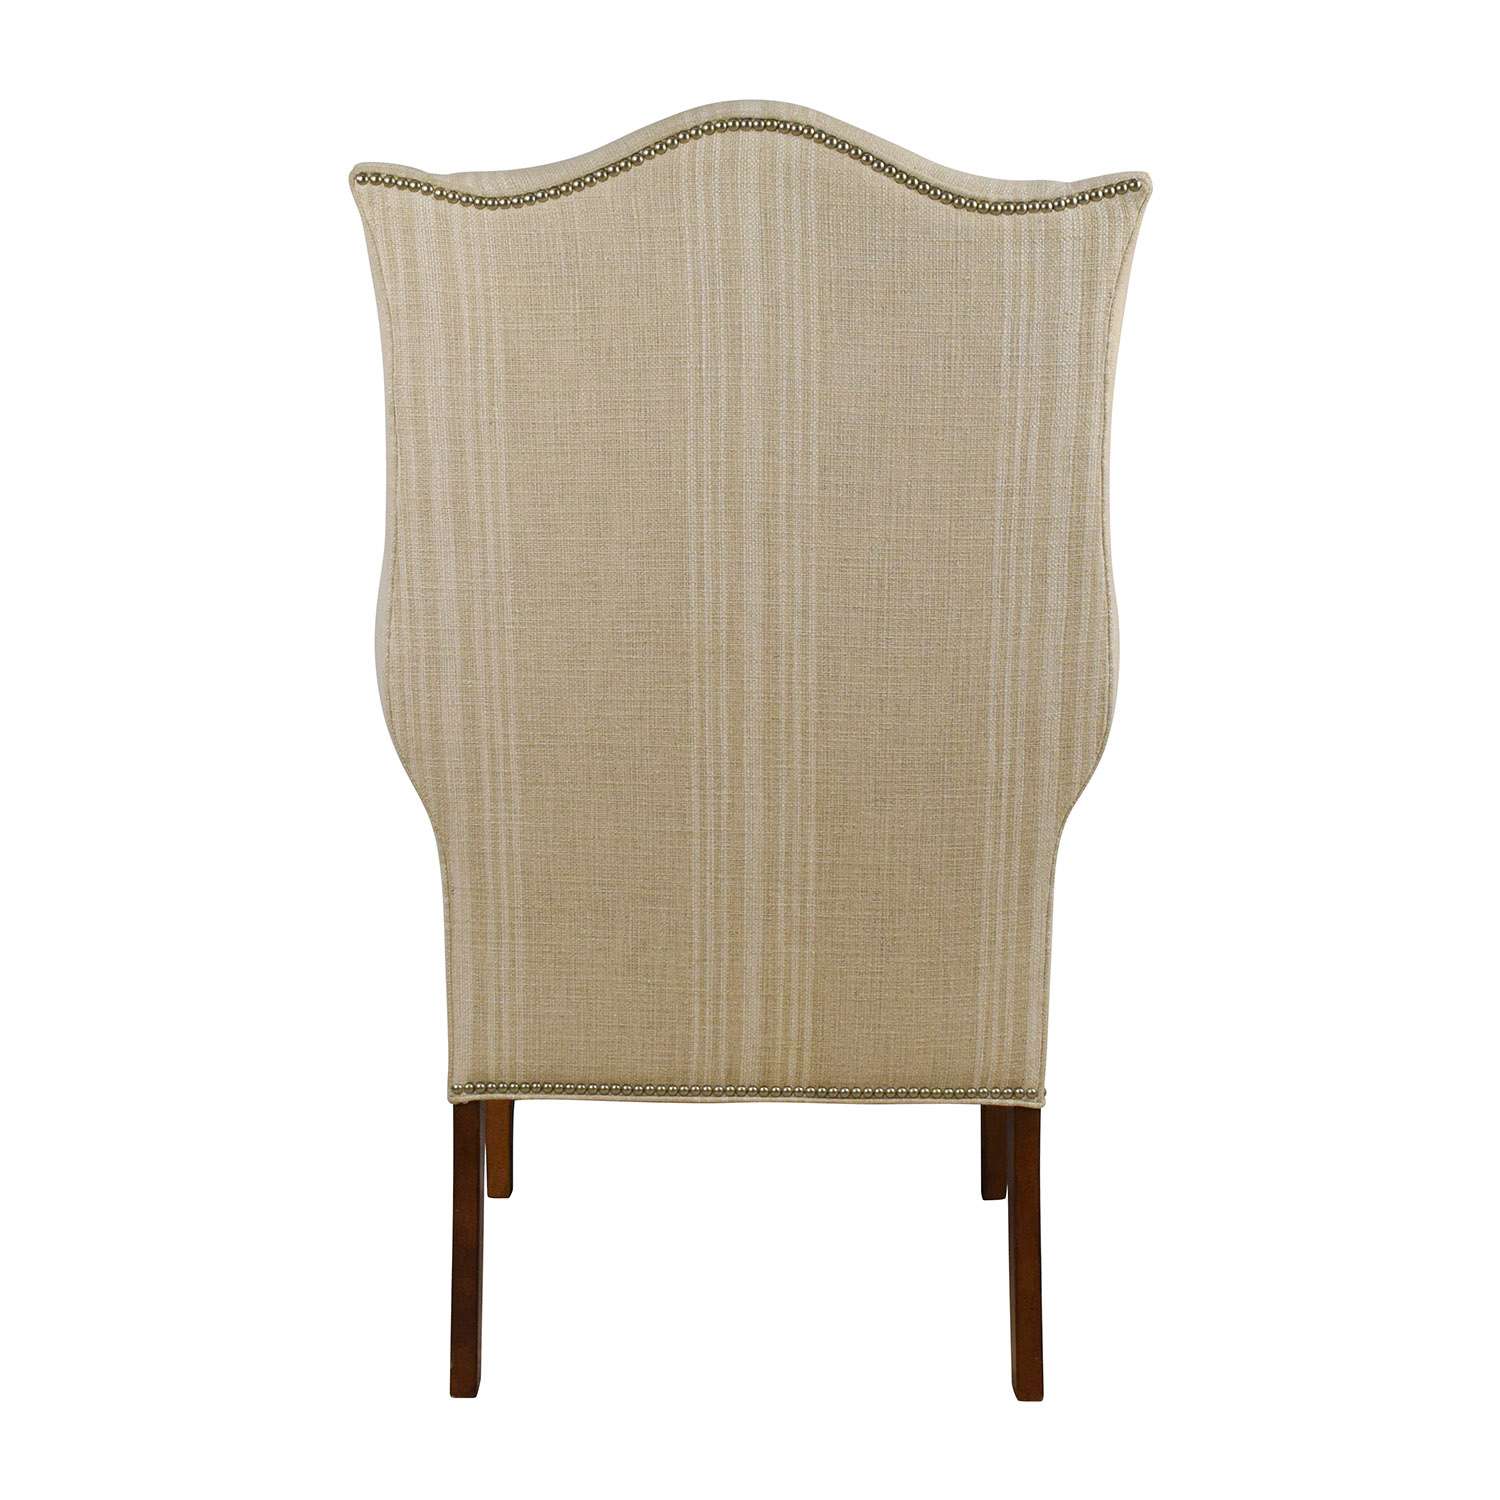 Ethan Allen Ethan Allen Skylar Stripped Wing Chair Chairs